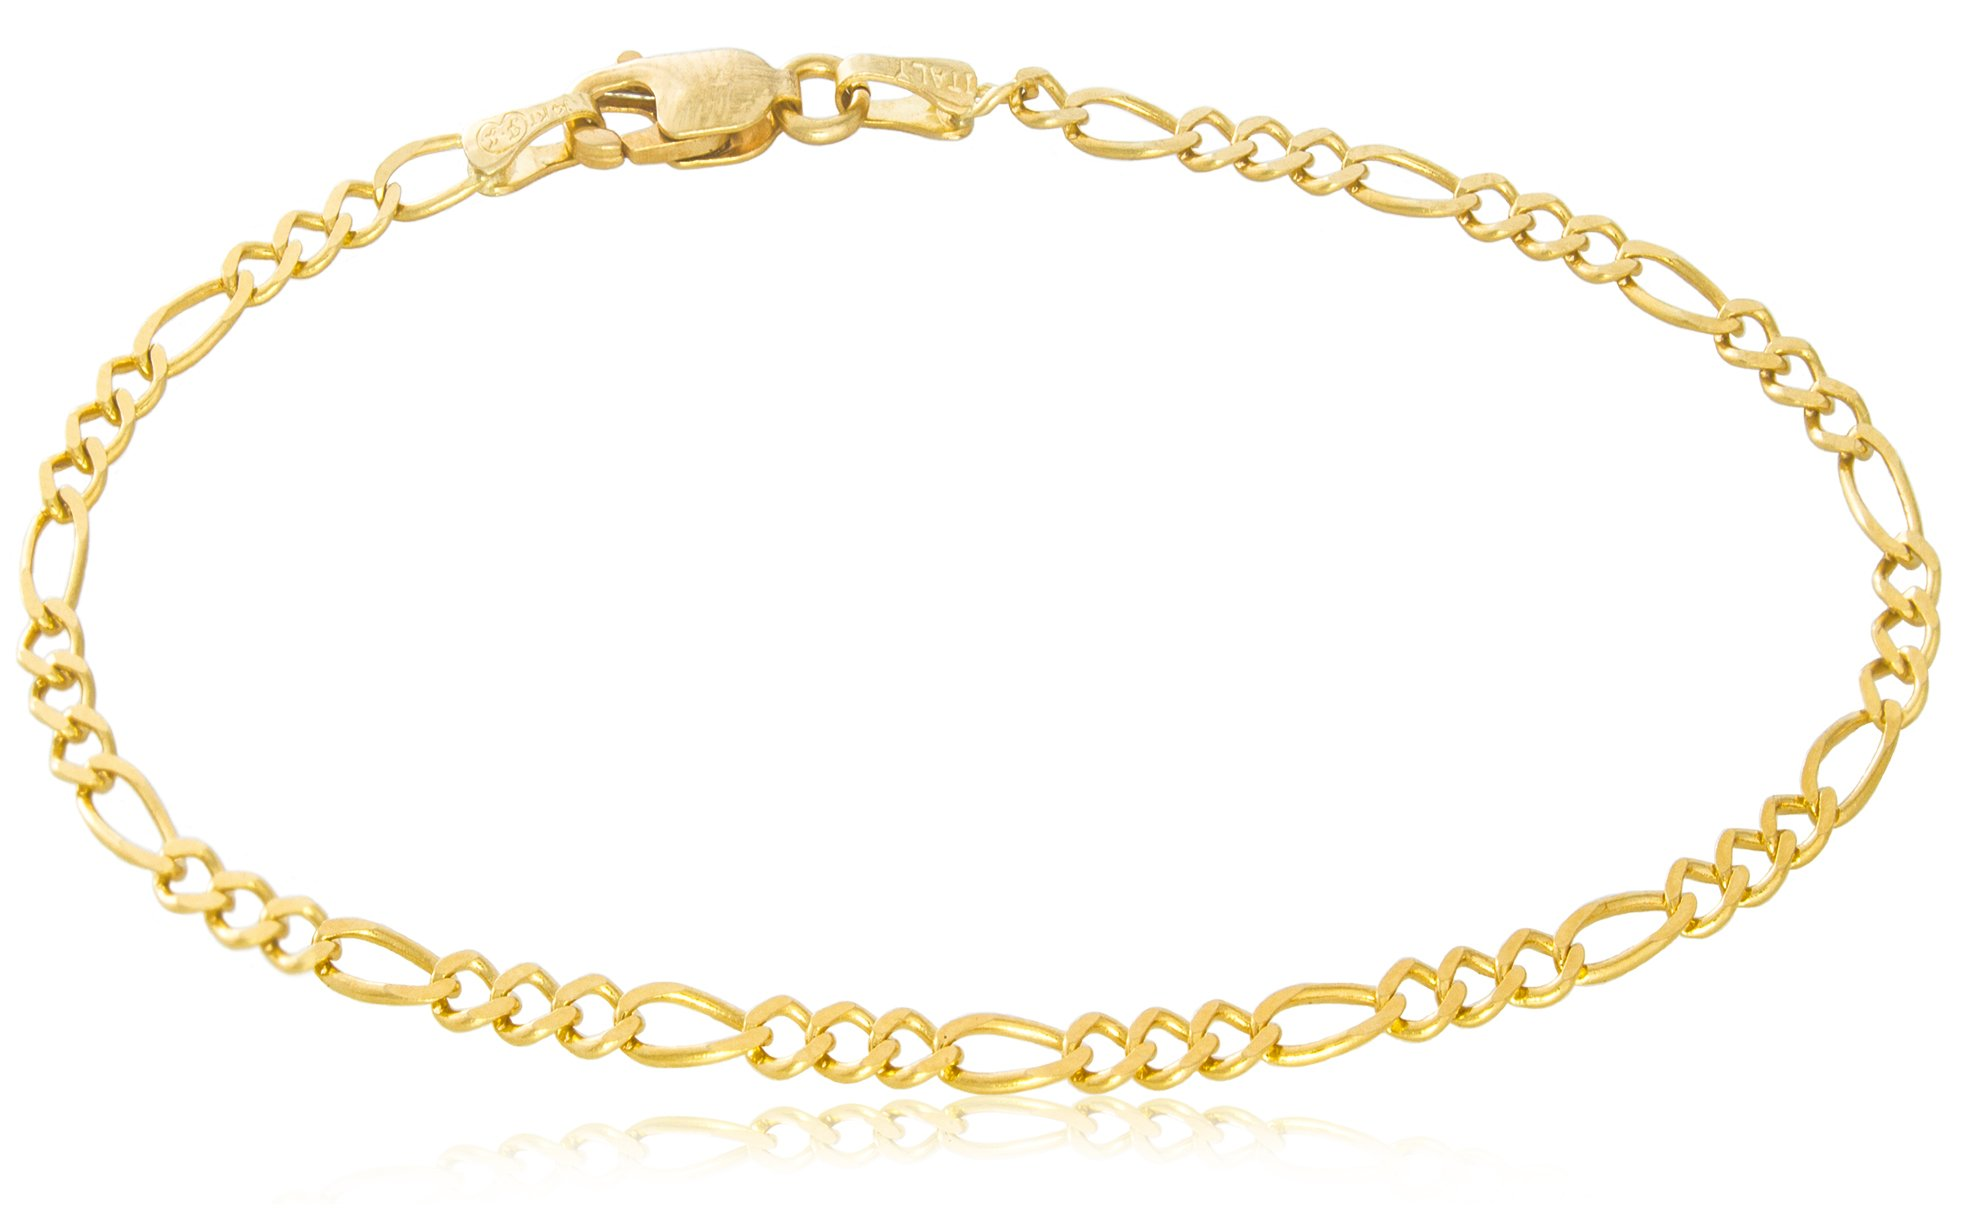 Solid Gold Figaro Light Chain Bracelet Made in Italy of 14K Yellow Gold 3mm Wide by 7-1/2'' Long